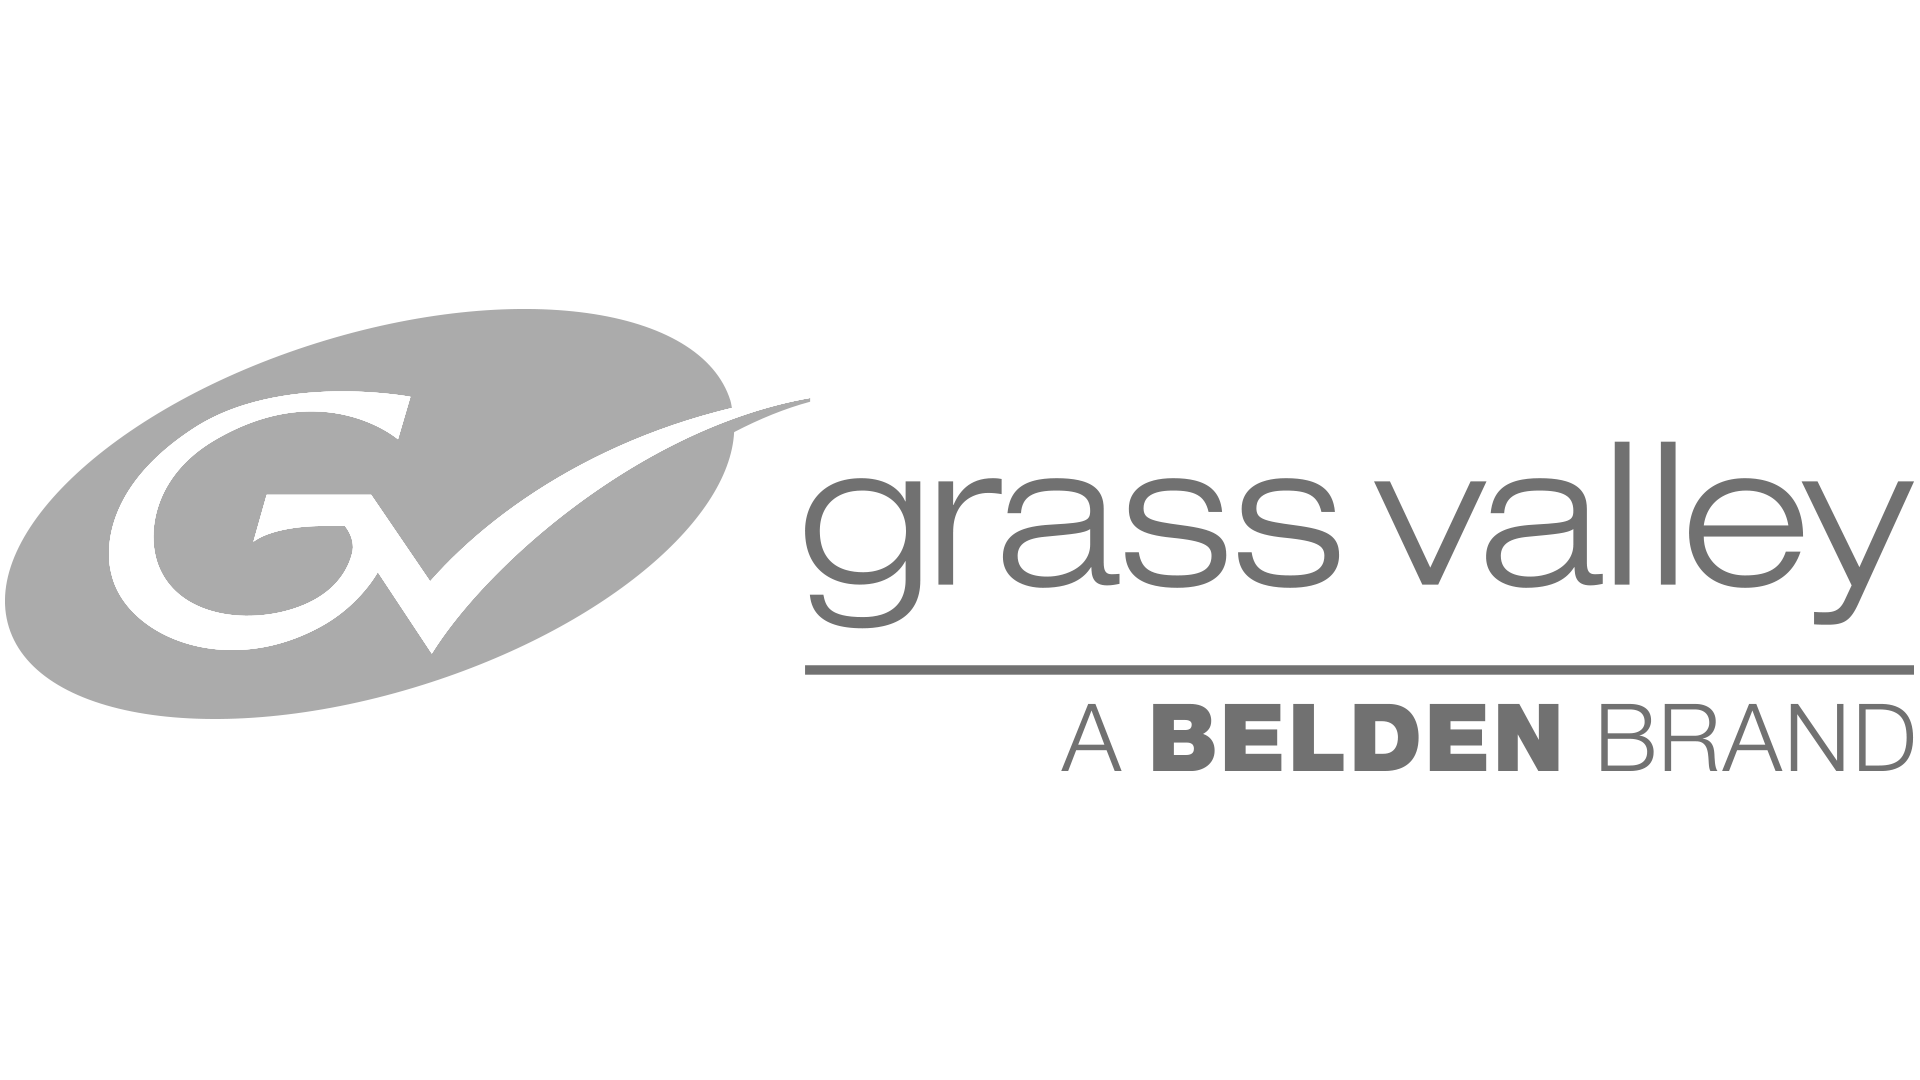 GrassValley_Logo_RGB.transparent.1920x1080 bn